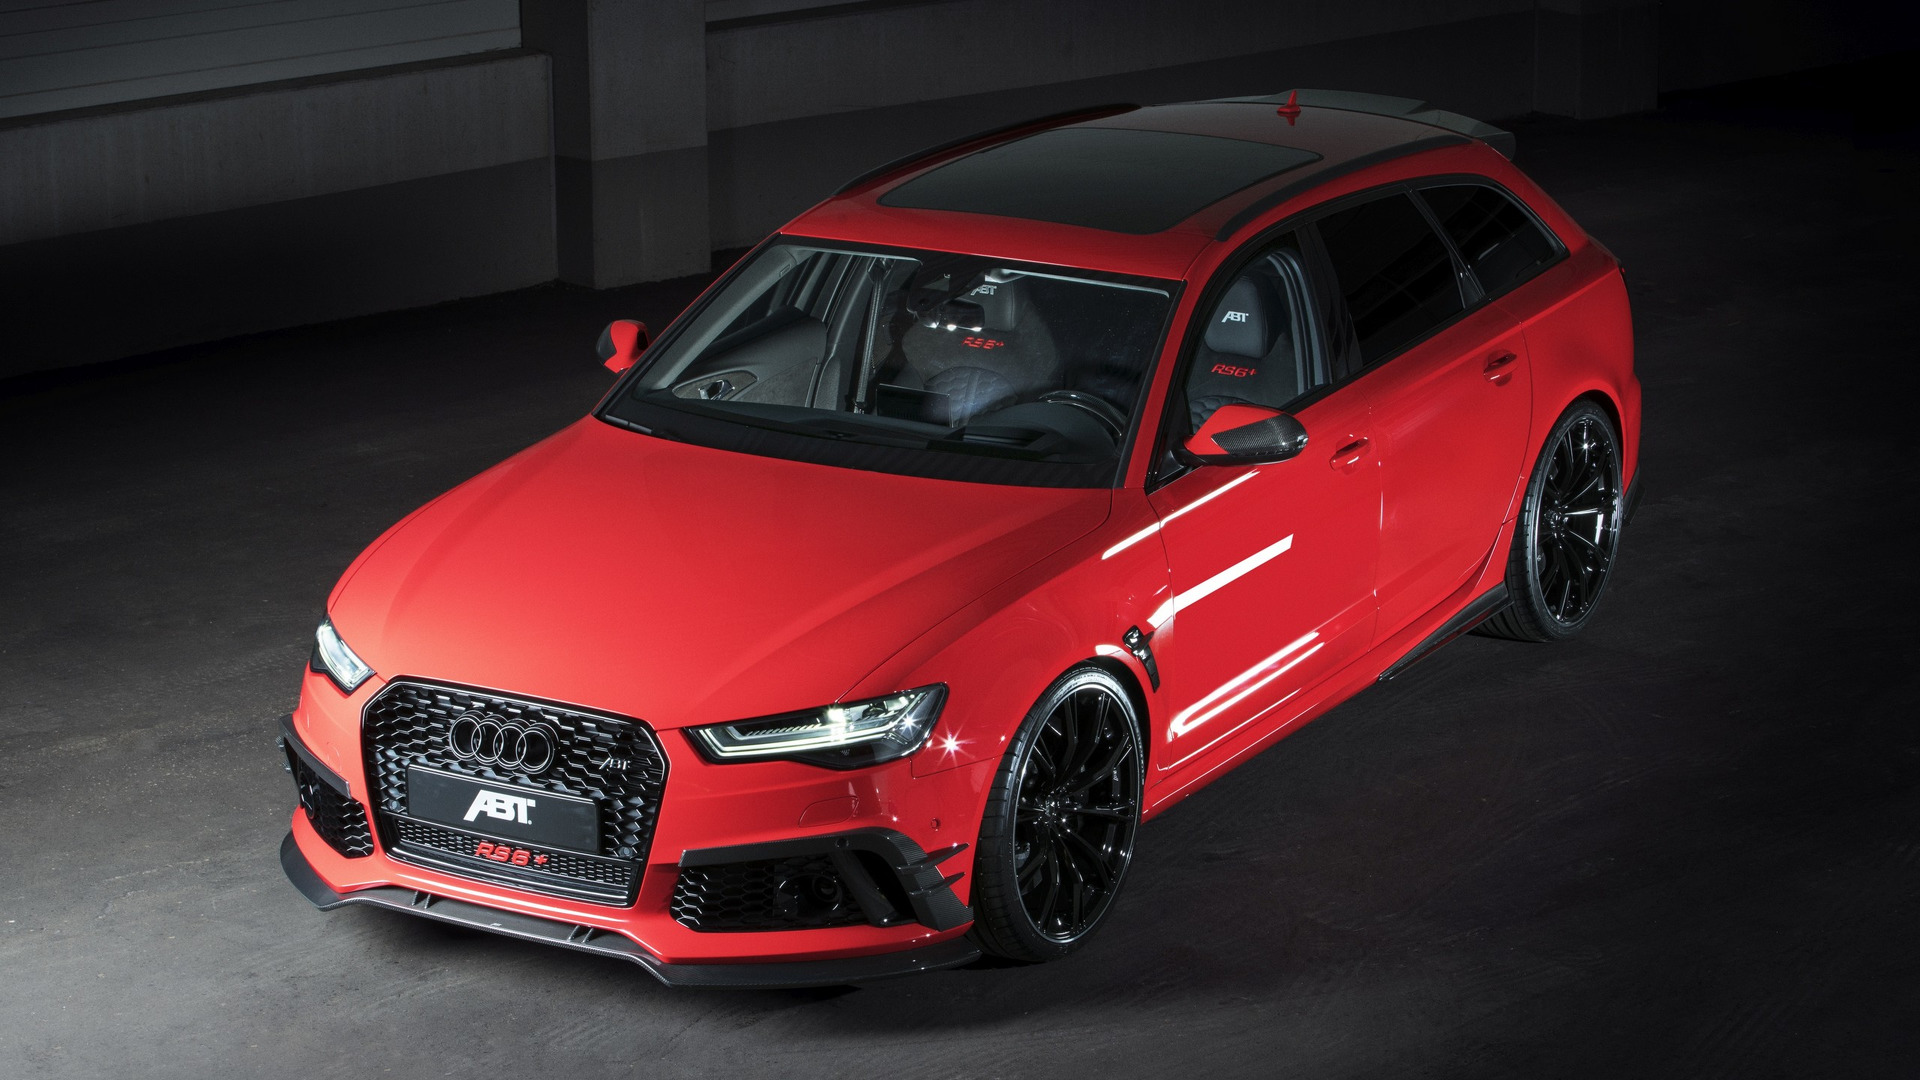 Audi Rs6 Avant By Abt Is 95 Hp Stronger Than An R8 V10 Plus